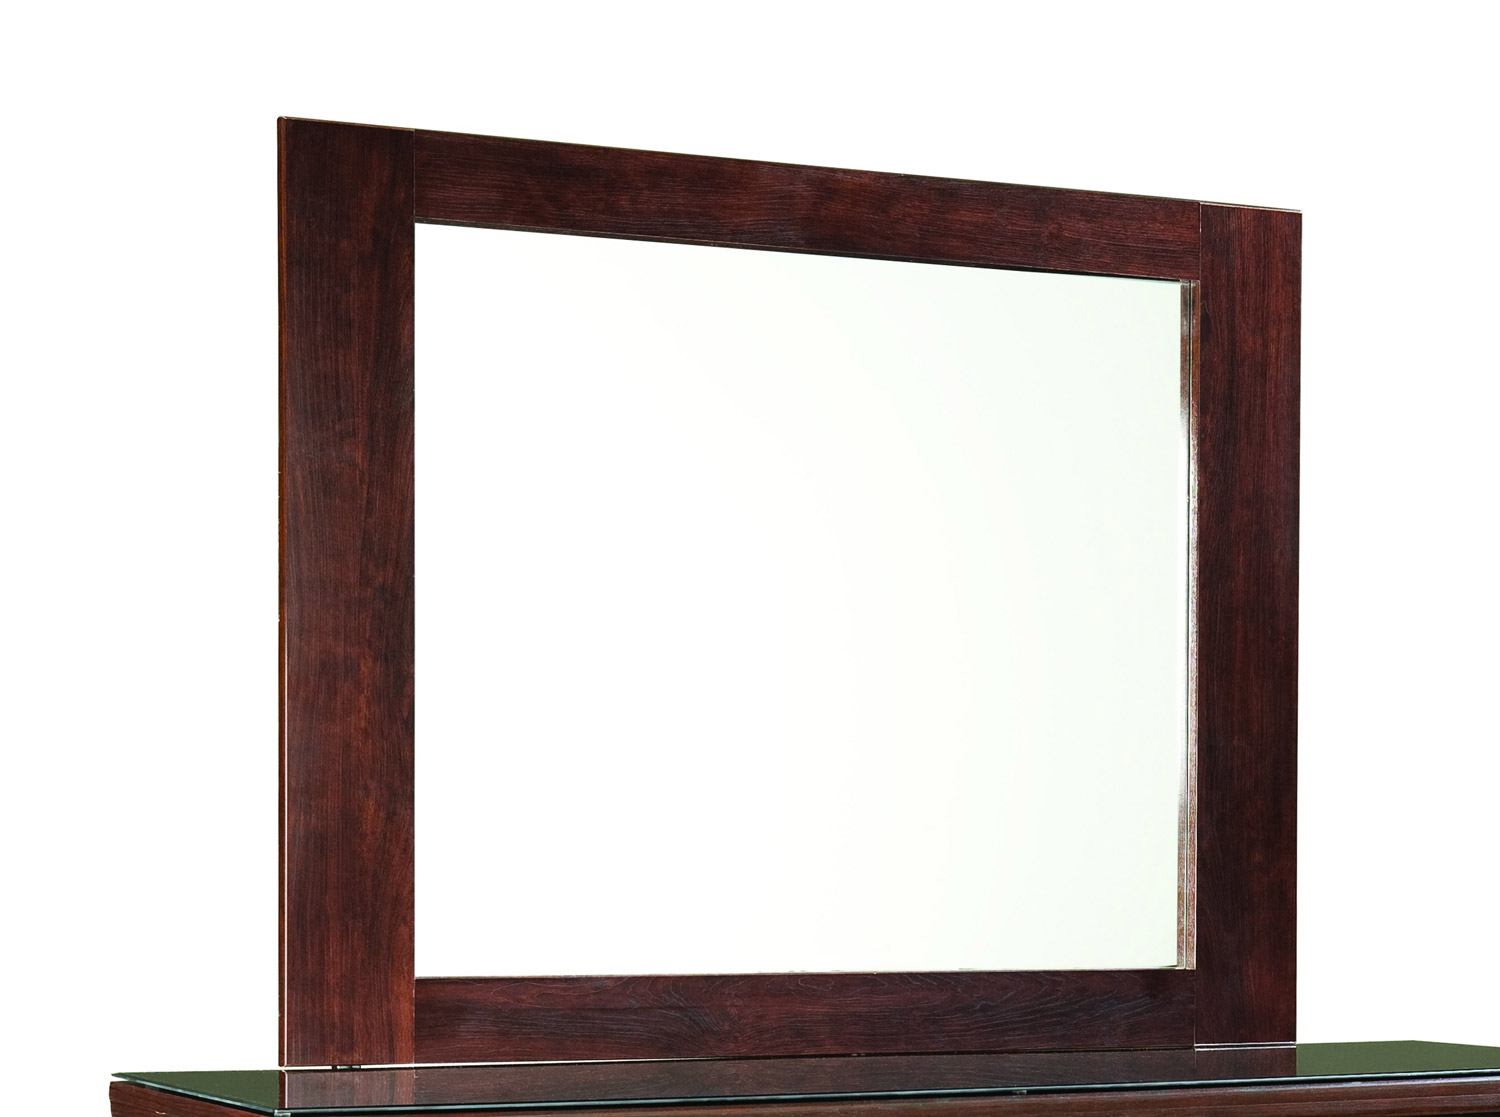 Global Furniture USA Leah Mirror - Engineered Wood/Paper Veneer - Dark Cherry Merlot